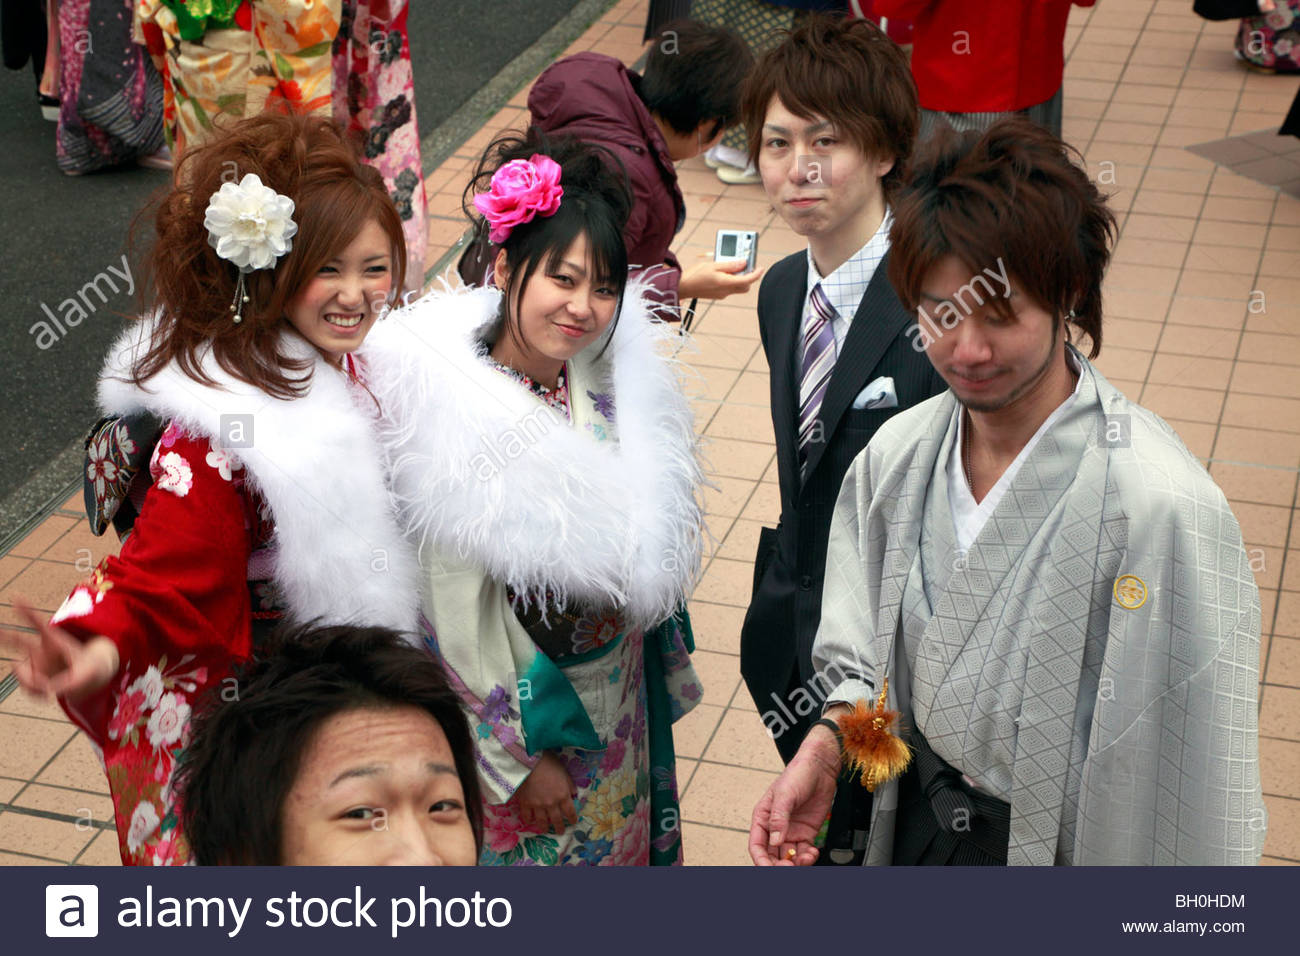 the day of the Coming of Age festival, Seijin no hi, Japan - Stock Image